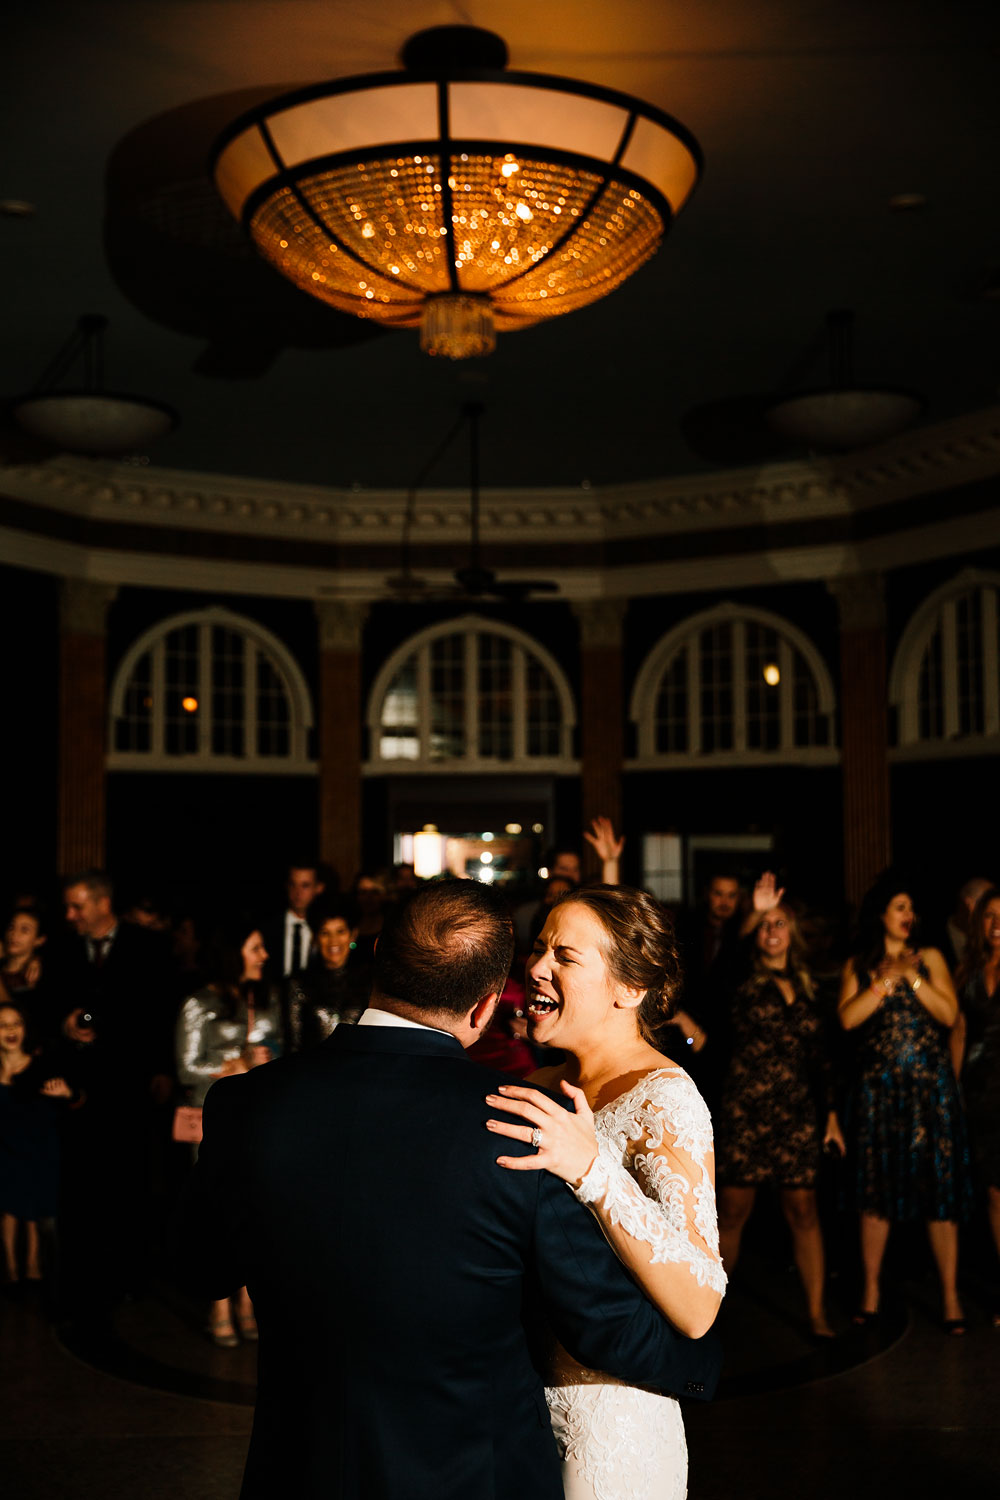 ballroom-at-parklane-wedding-photography-cleveland-wedding-photographers-severance-hall-university-circle-102.jpg